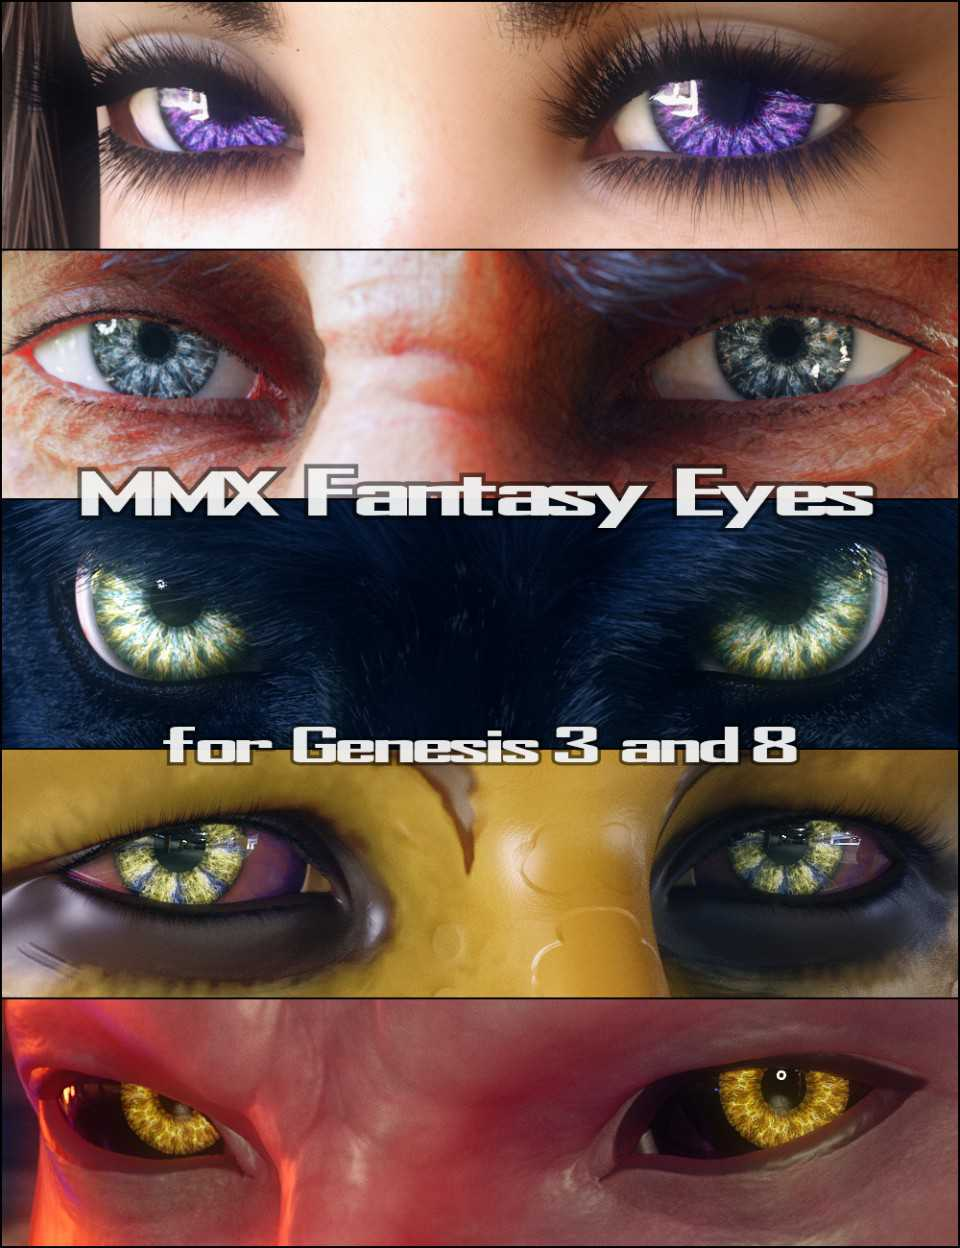 MMX Fantasy Eyes for Genesis 3 and 8